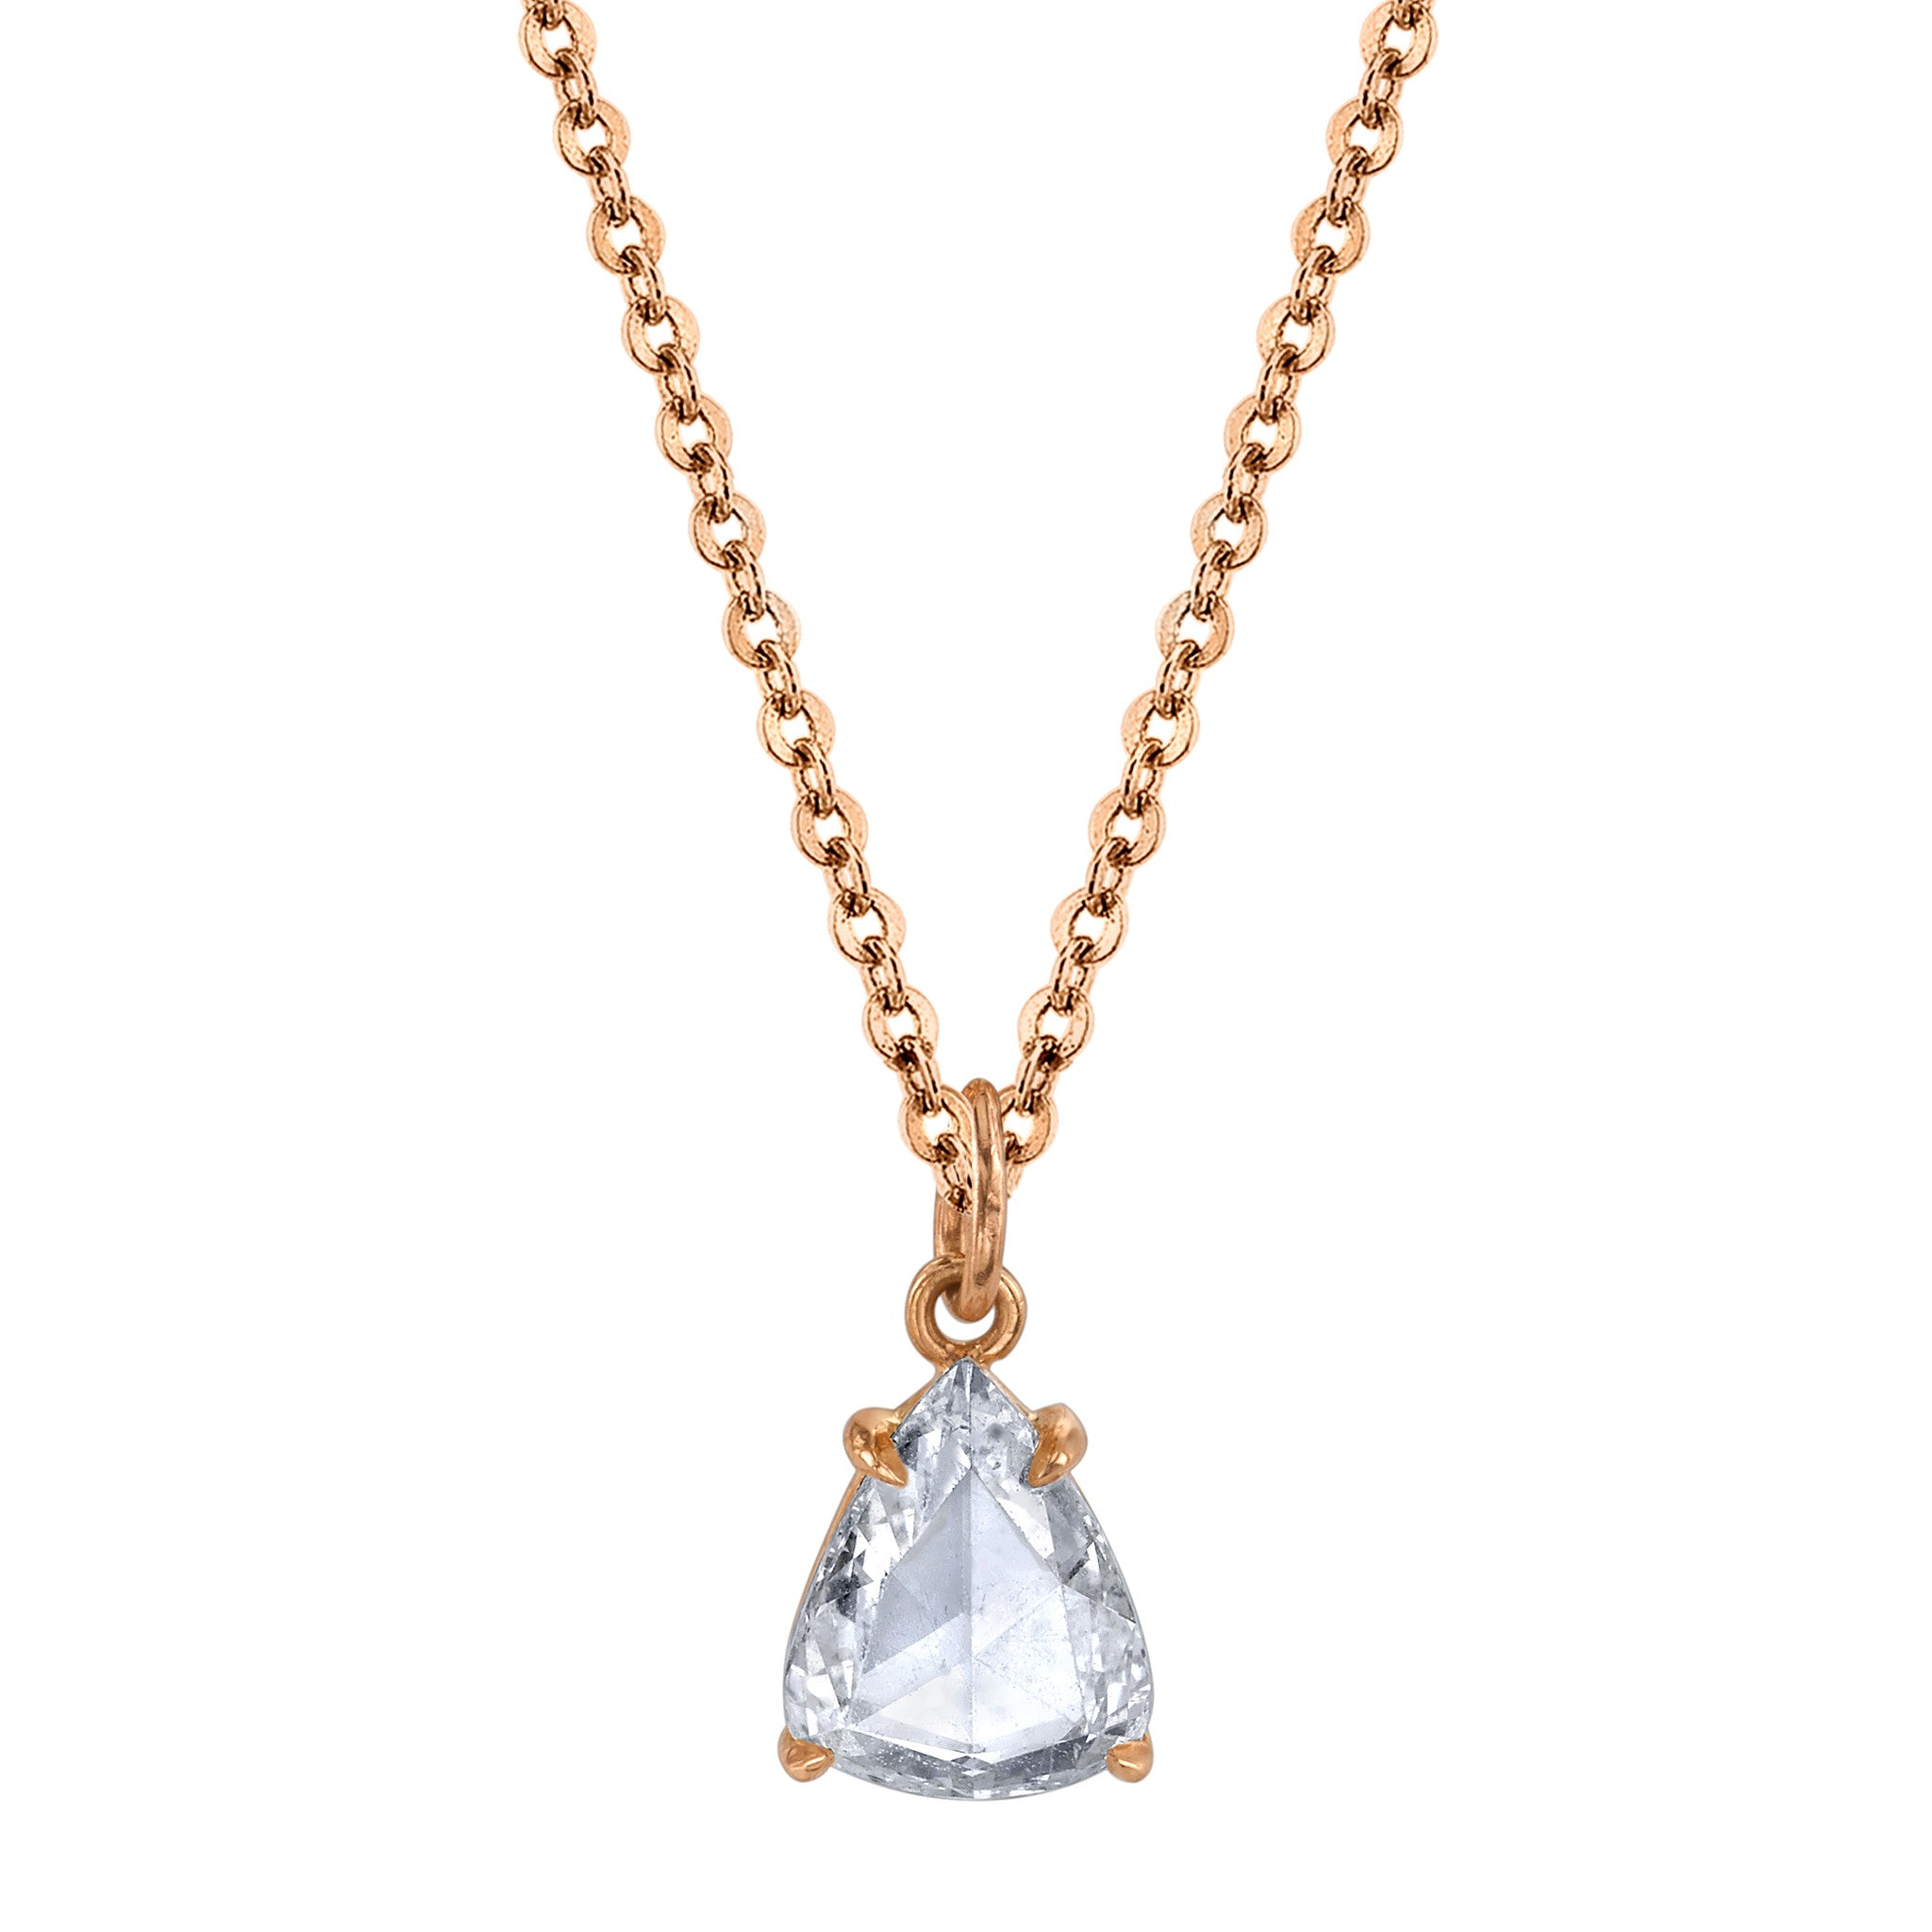 about chain pendant dancing necklace diamond drop tear gold a pear itm shape y details ct shaped